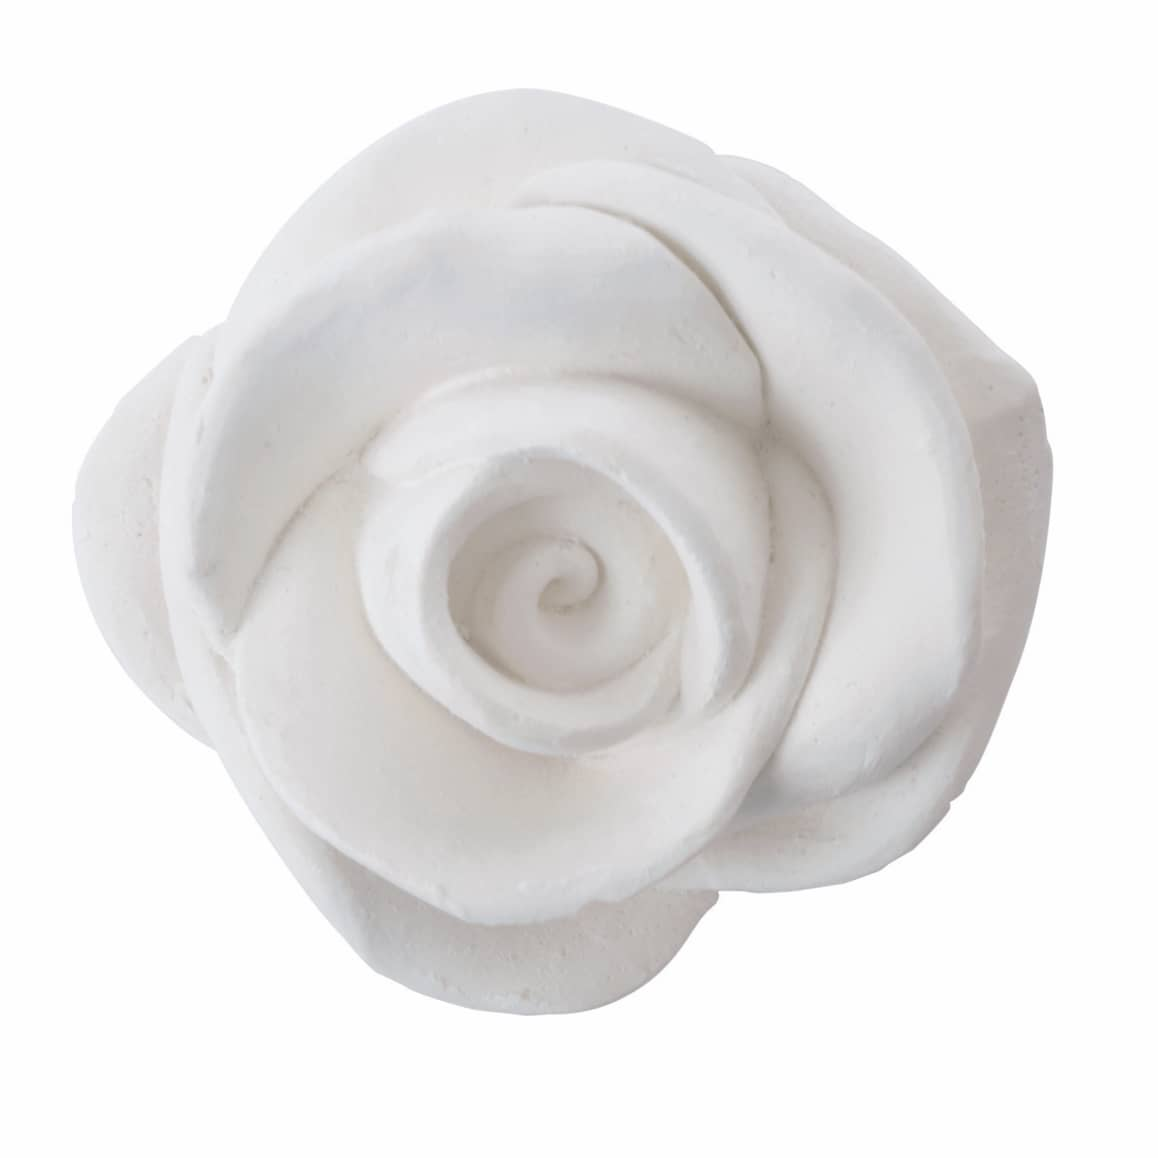 Scented Ceramic Roses Set of 3